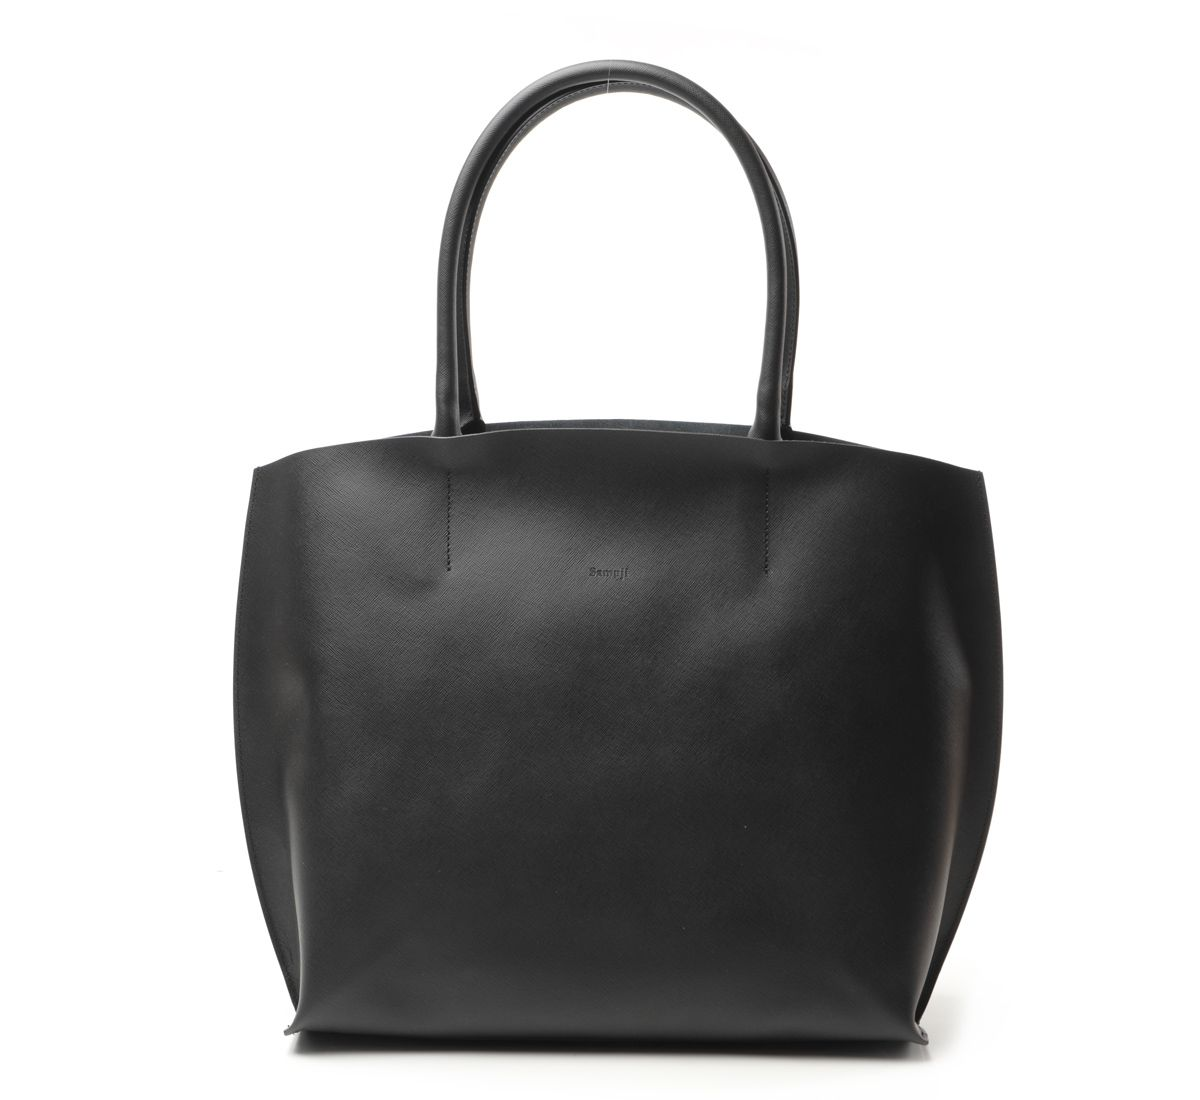 7a5c2a0d99ec New for Fall 2015 the large Unlined Tote by Samuji avail at ...